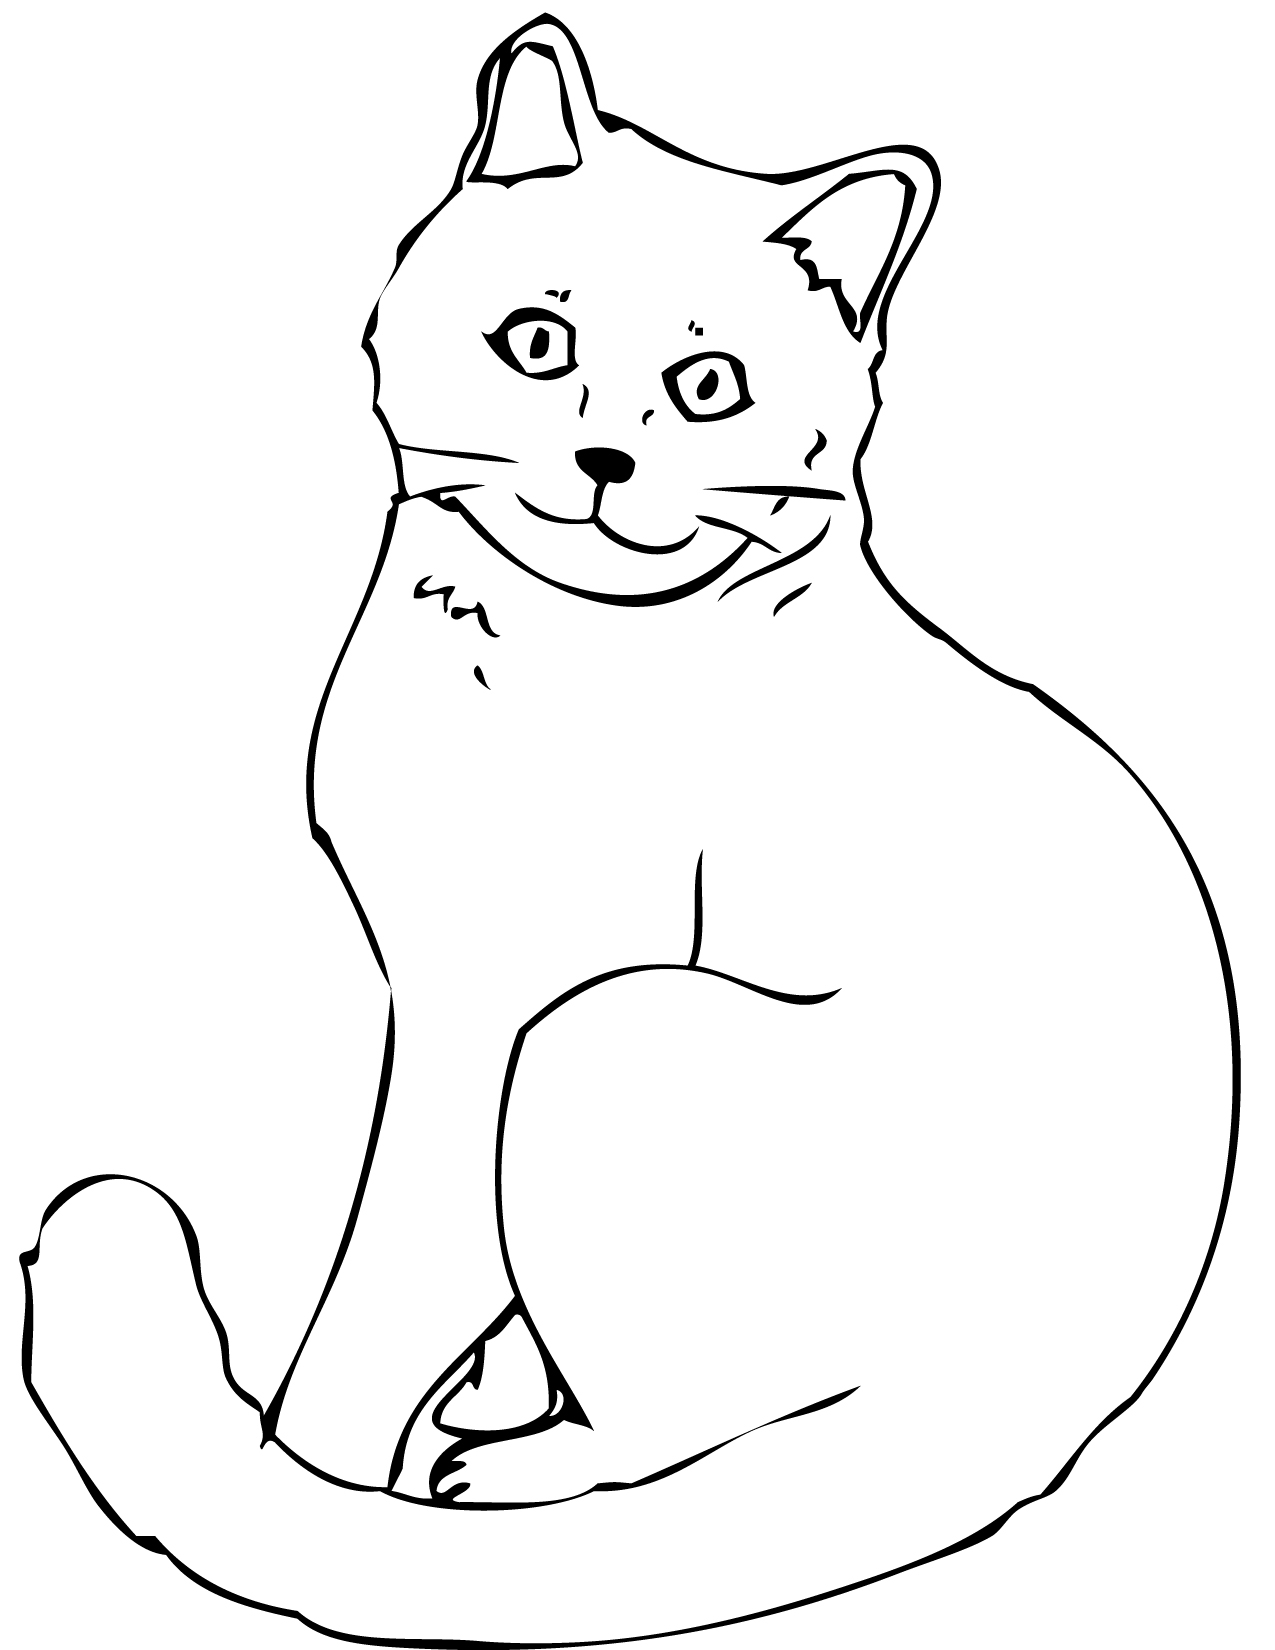 Cat Coloring Pages - Cat Coloring Pages Free